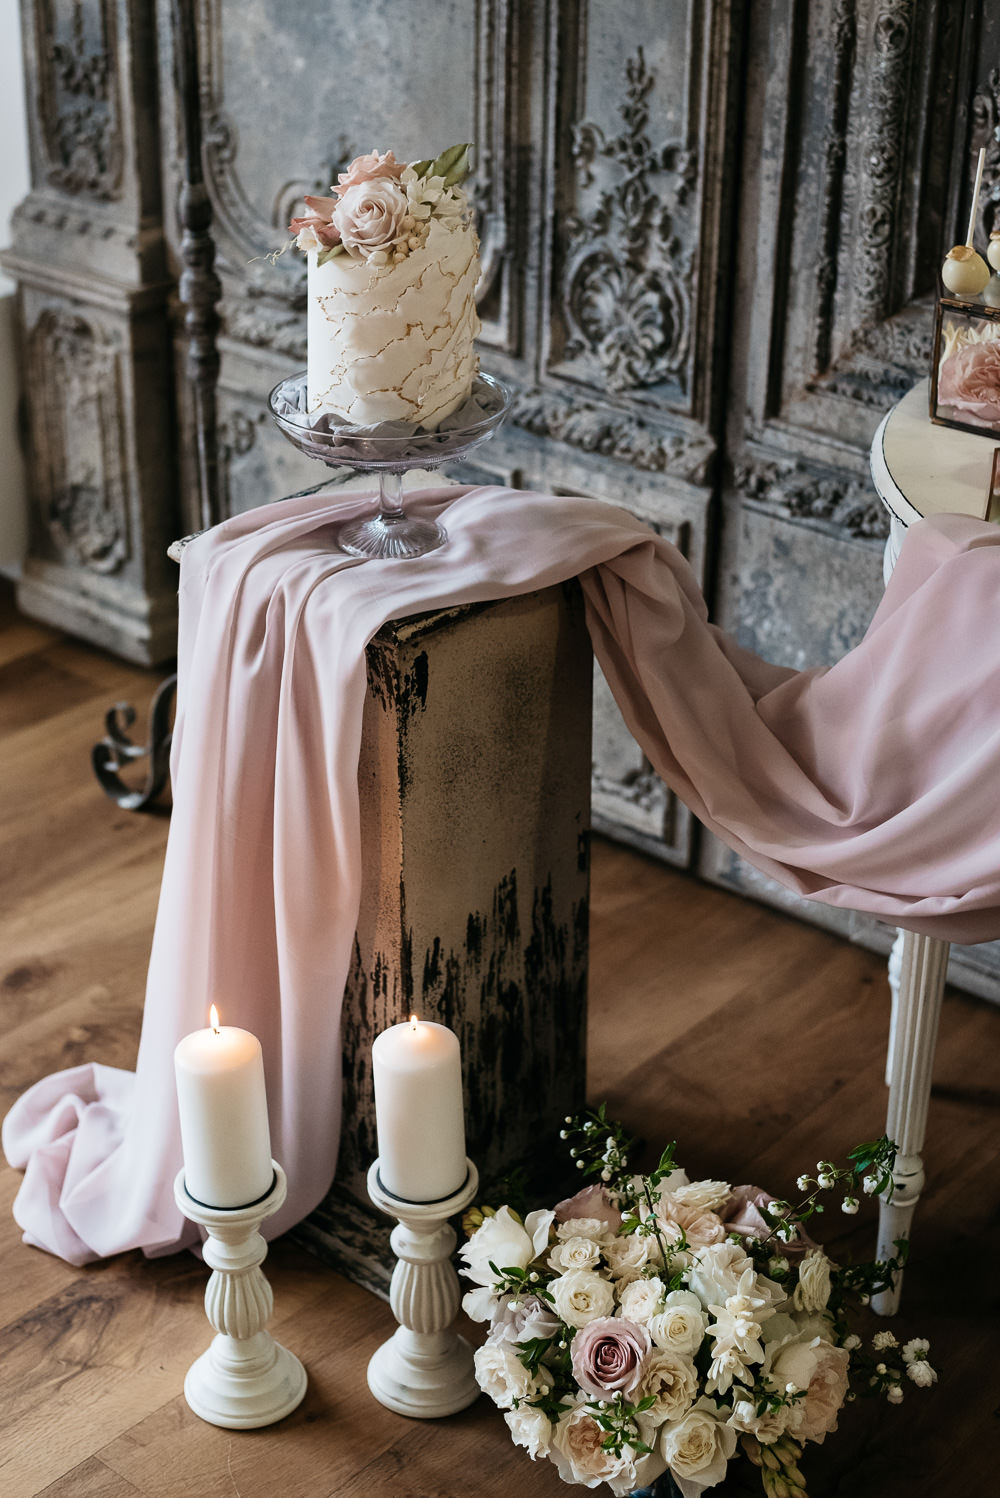 Cake Table Luxury Dramatic Flowers Candles Swan Lake Wedding Ideas Salsabil Morrison